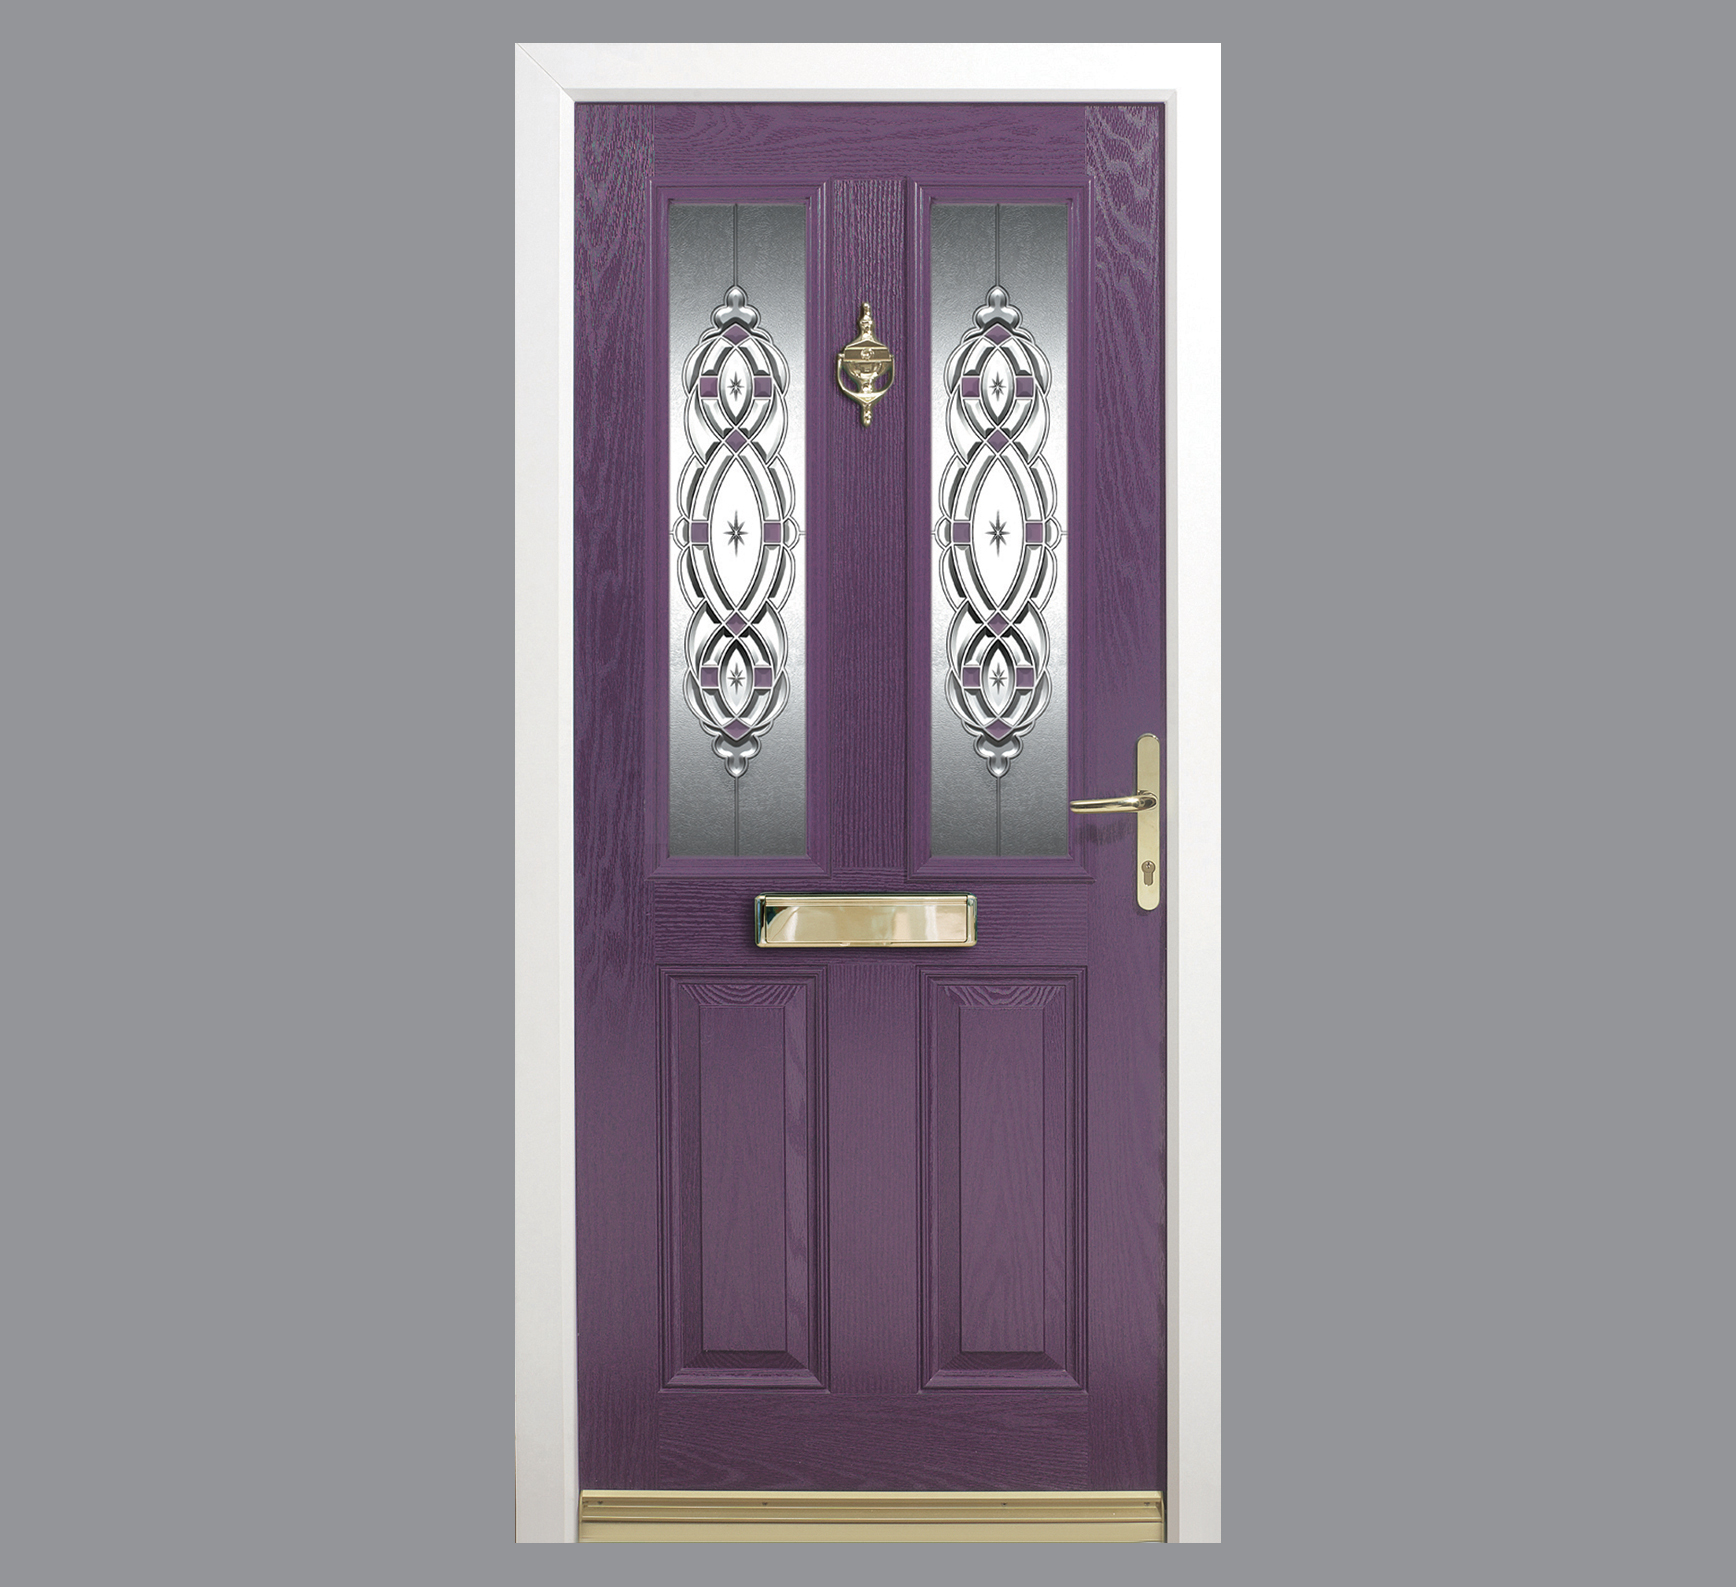 http://www.dualaspectglass.com/wp-content/uploads/2014/04/bAubergine-Door-shown-with-REF-1A-glass1.jpg